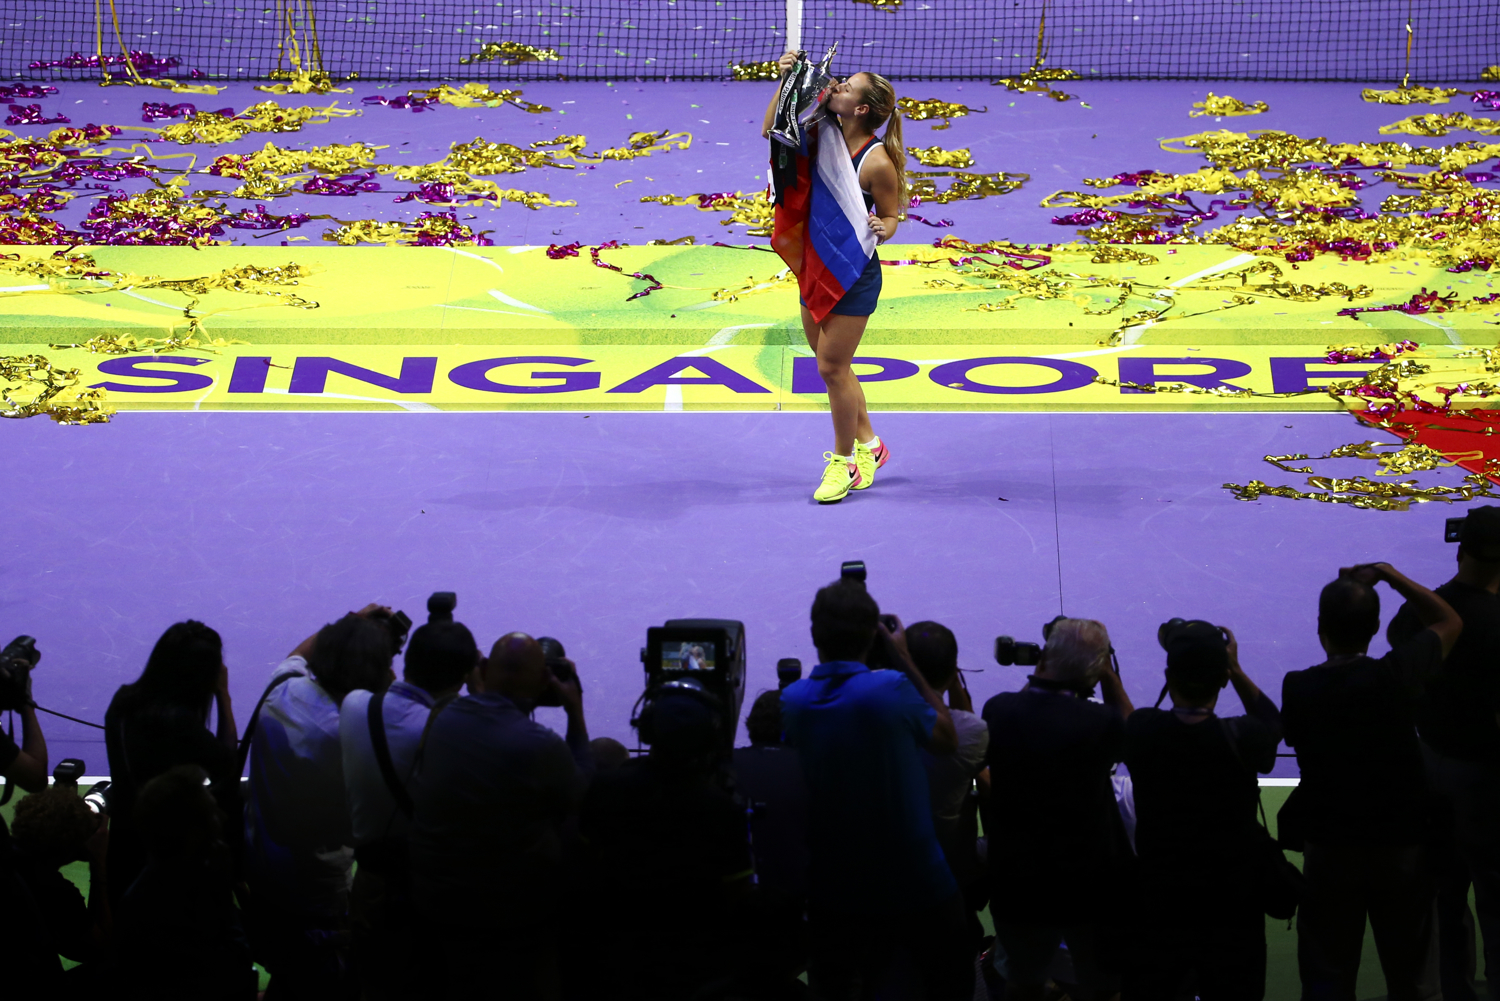 Tennis - BNP Paribas WTA Finals - Singapore Indoor Stadium - 30/10/16 Slovakia's Dominika Cibulkova celebrates with the Billie Jean King Trophy Mandatory Credit: Action Images / Yong Teck Lim Livepic EDITORIAL USE ONLY.